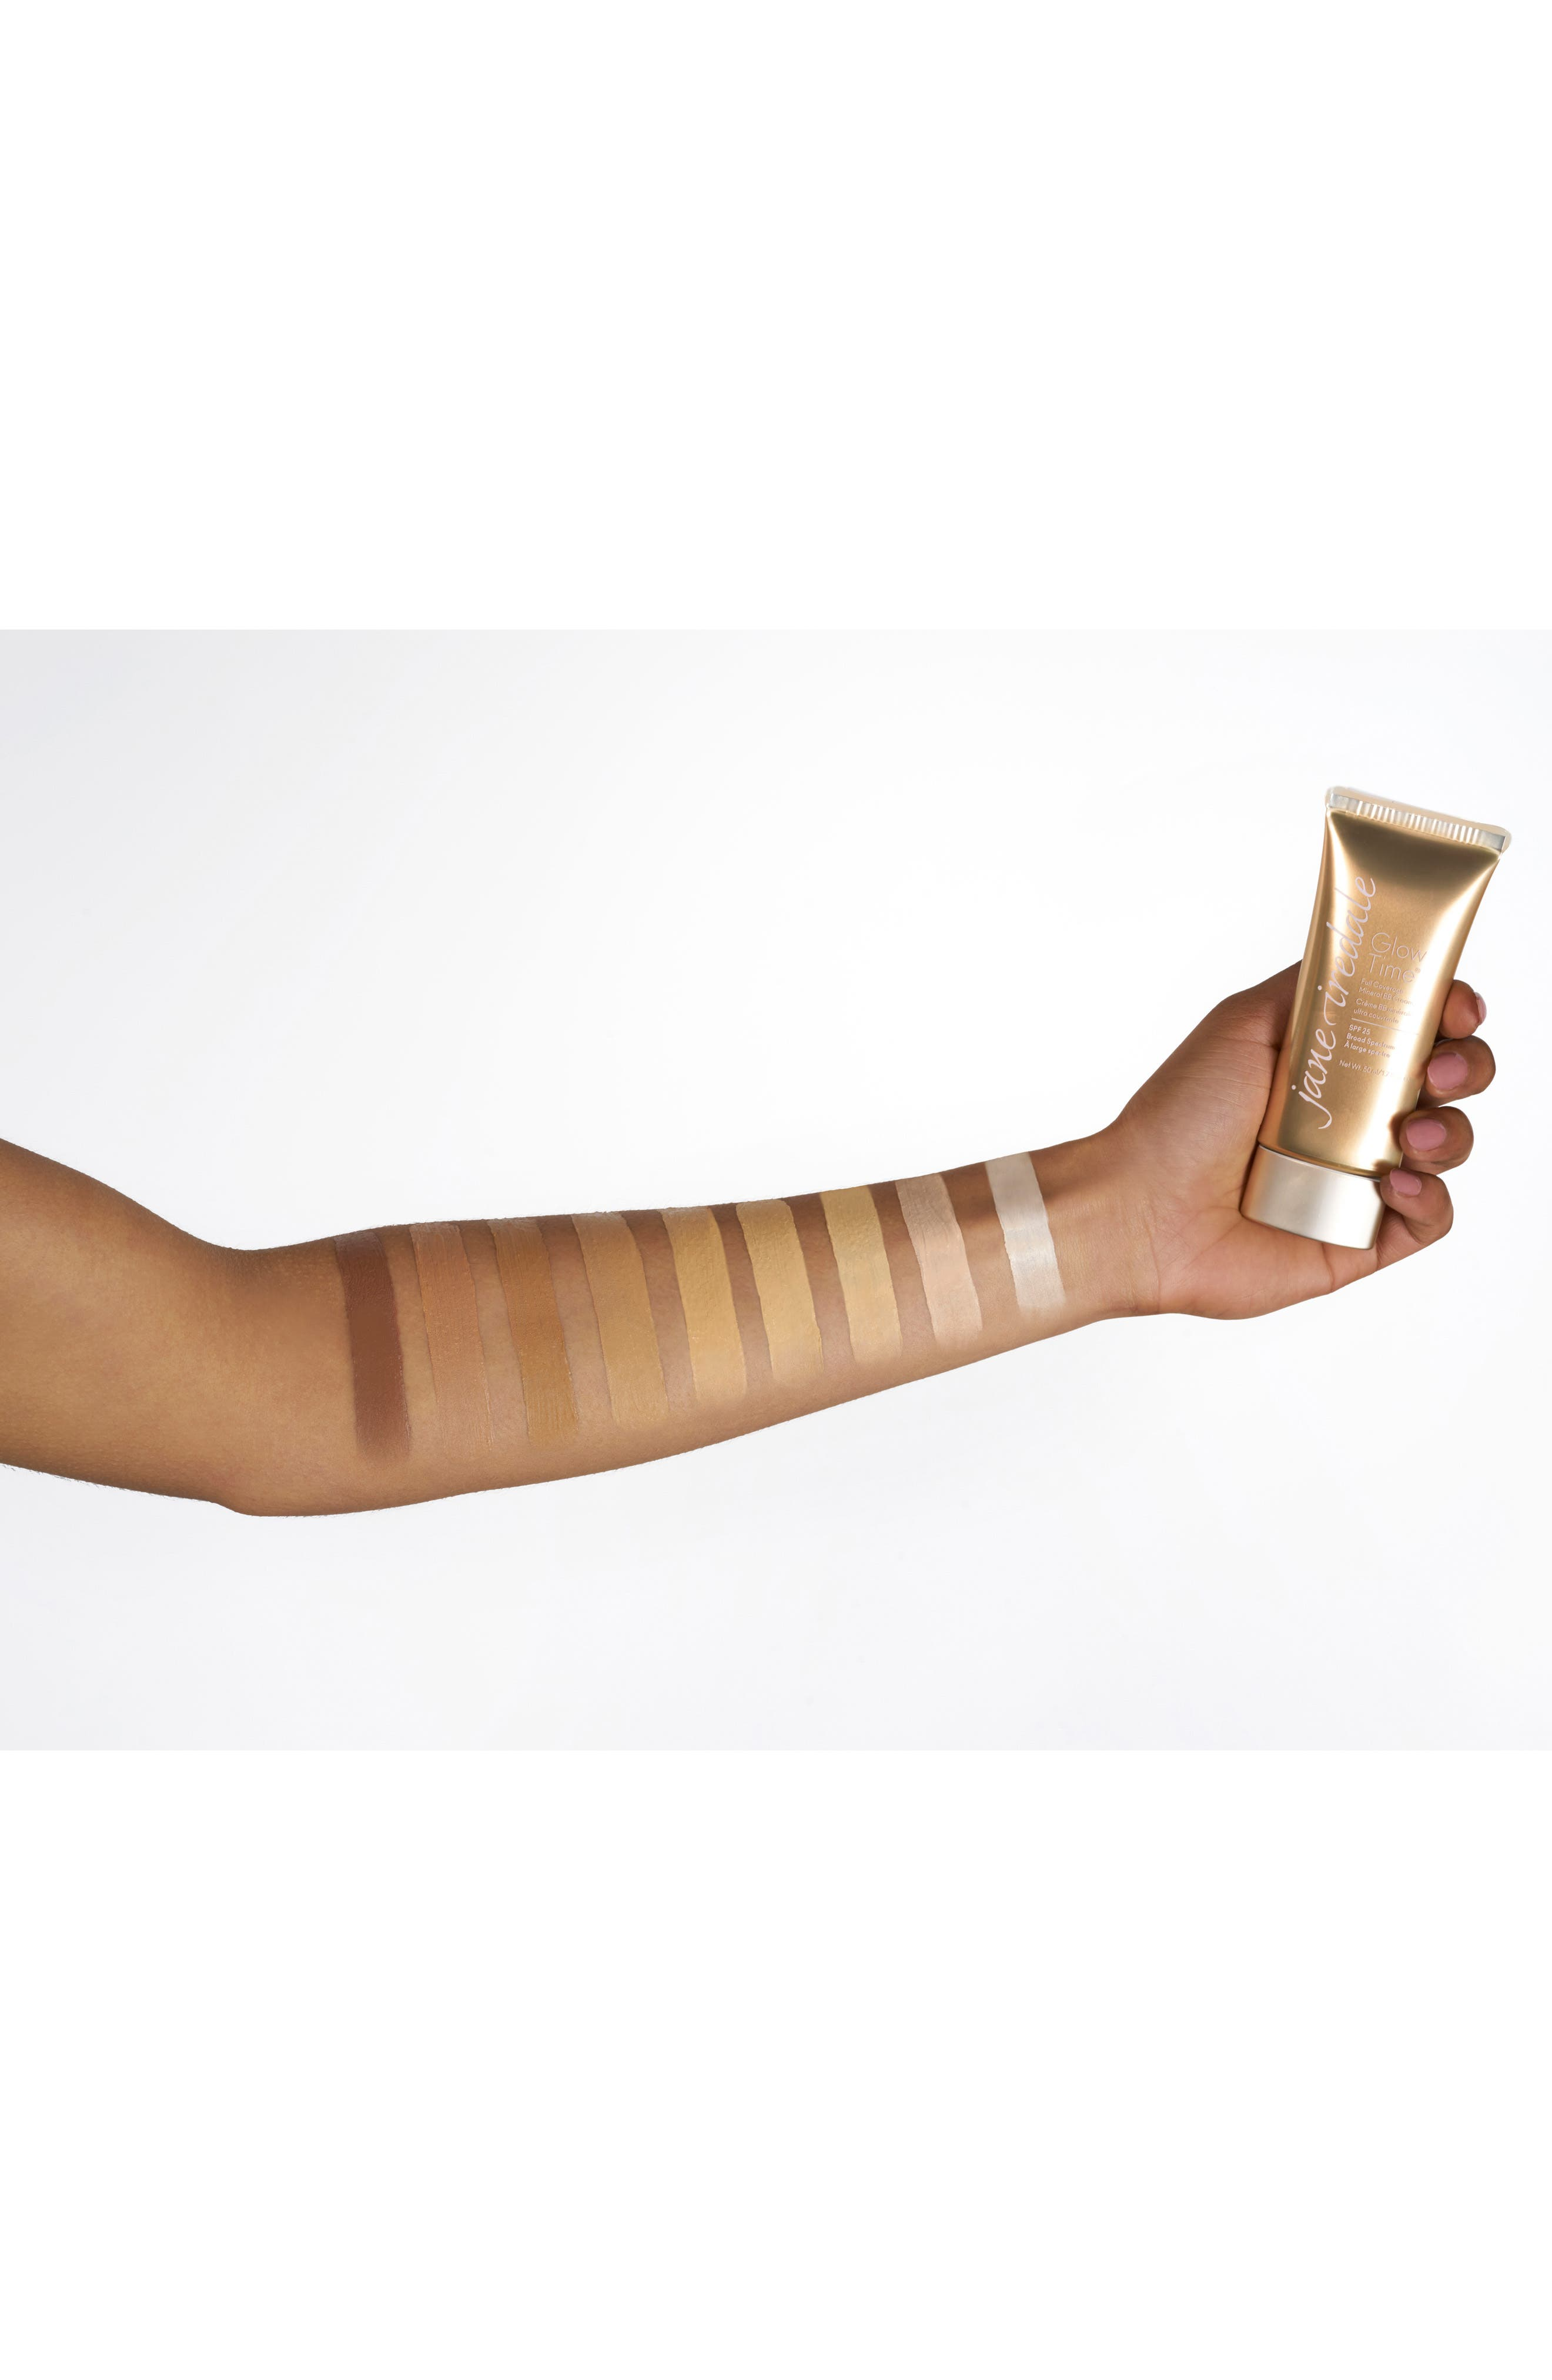 JANE IREDALE, Glow Time Full Coverage Mineral BB Cream Broad Spectrum SPF 25, Alternate thumbnail 5, color, BB12